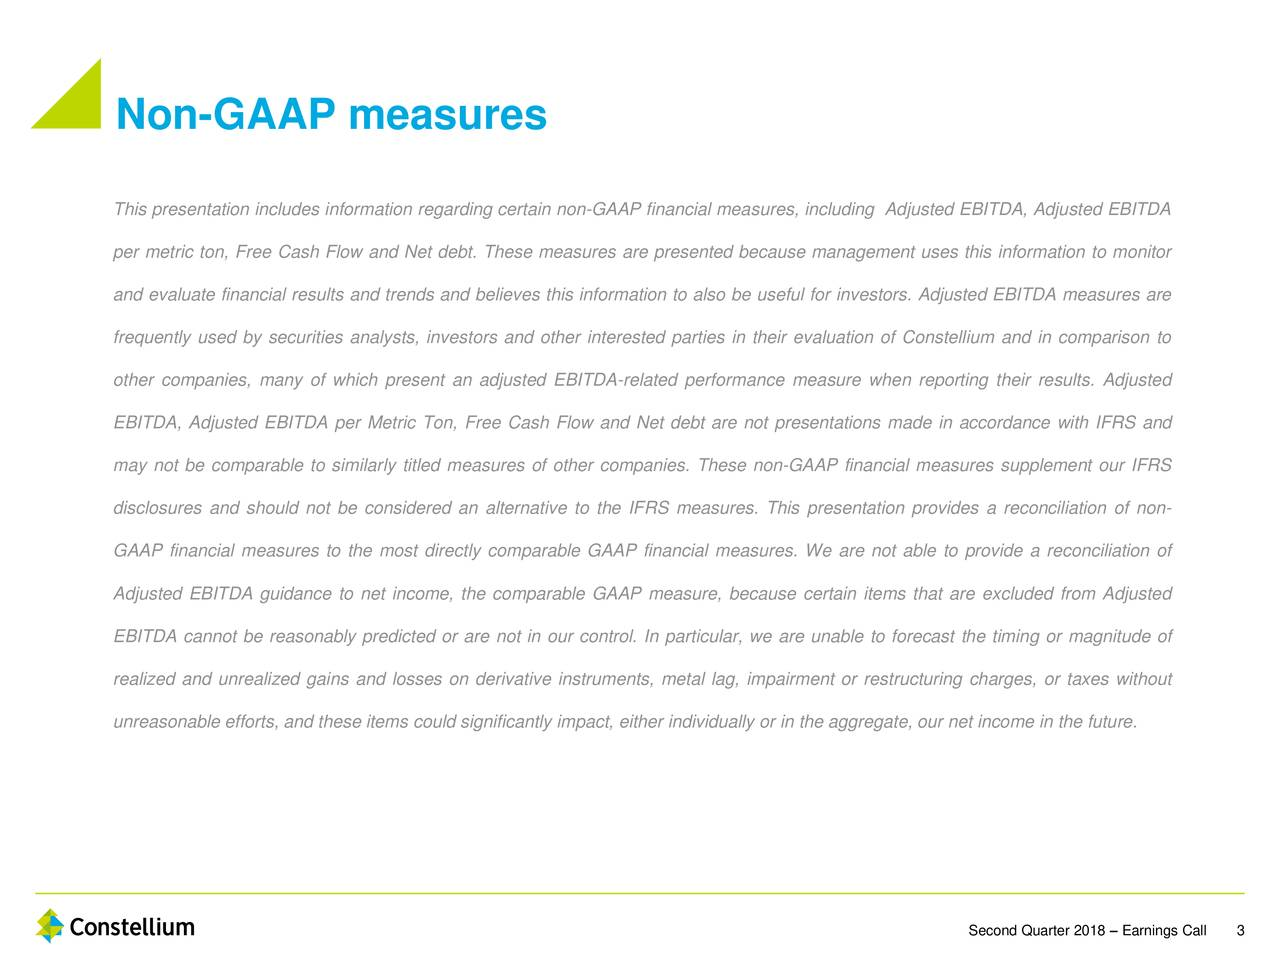 This presentation includes information regarding certain non-GAAP financial measures, including Adjusted EBITDA, Adjusted EBITDA per metric ton, Free Cash Flow and Net debt. These measures are presented because management uses this information to monitor and evaluate financial results and trends and believes this information to also be useful for investors. Adjusted EBITDA measures are frequently used by securities analysts, investors and other interested parties in their evaluation of Constellium and in comparison to other companies, many of which present an adjusted EBITDA-related performance measure when reporting their results. Adjusted EBITDA, Adjusted EBITDA per Metric Ton, Free Cash Flow and Net debt are not presentations made in accordance with IFRS and may not be comparable to similarly titled measures of other companies. These non-GAAP financial measures supplement our IFRS disclosures and should not be considered an alternative to the IFRS measures. This presentation provides a reconciliation of non- GAAP financial measures to the most directly comparable GAAP financial measures. We are not able to provide a reconciliation of Adjusted EBITDA guidance to net income, the comparable GAAP measure, because certain items that are excluded from Adjusted EBITDA cannot be reasonably predicted or are not in our control. In particular, we are unable to forecast the timing or magnitude of realized and unrealized gains and losses on derivative instruments, metal lag, impairment or restructuring charges, or taxes without unreasonable efforts, and these items could significantly impact, either individually or in the aggregate, our net income in the future. Second Quarter 2018 – Earnings3Call